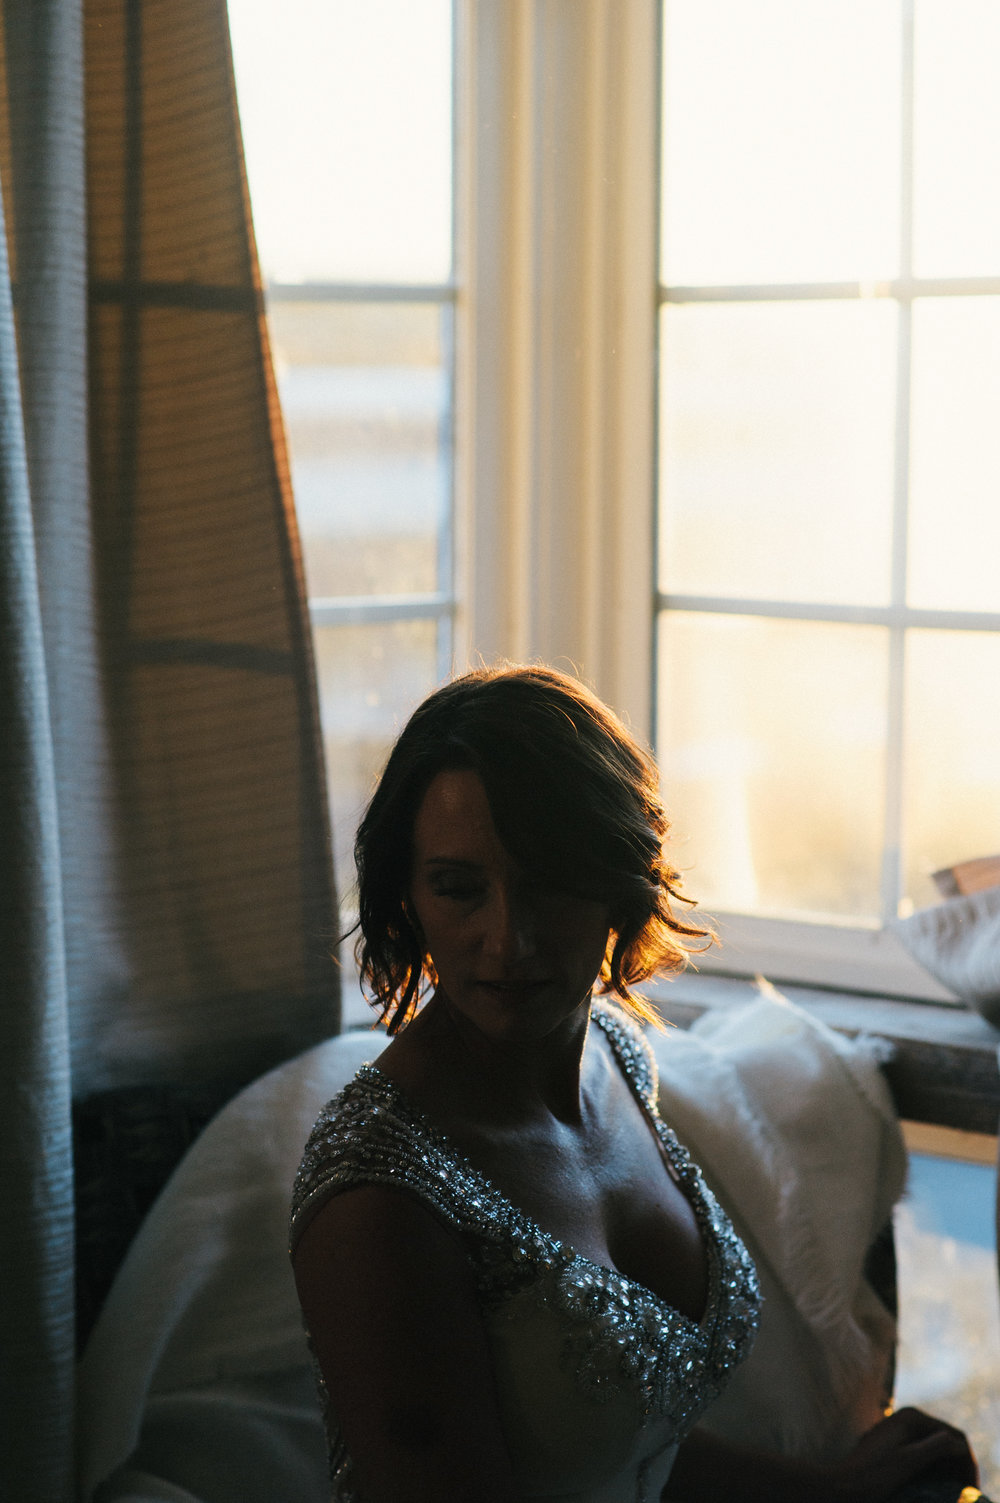 savannah-georgia-wedding-photographer-south-east-destination-wedding-photographer-meg-hill-photo-savannah-georgia-wedding-photographer